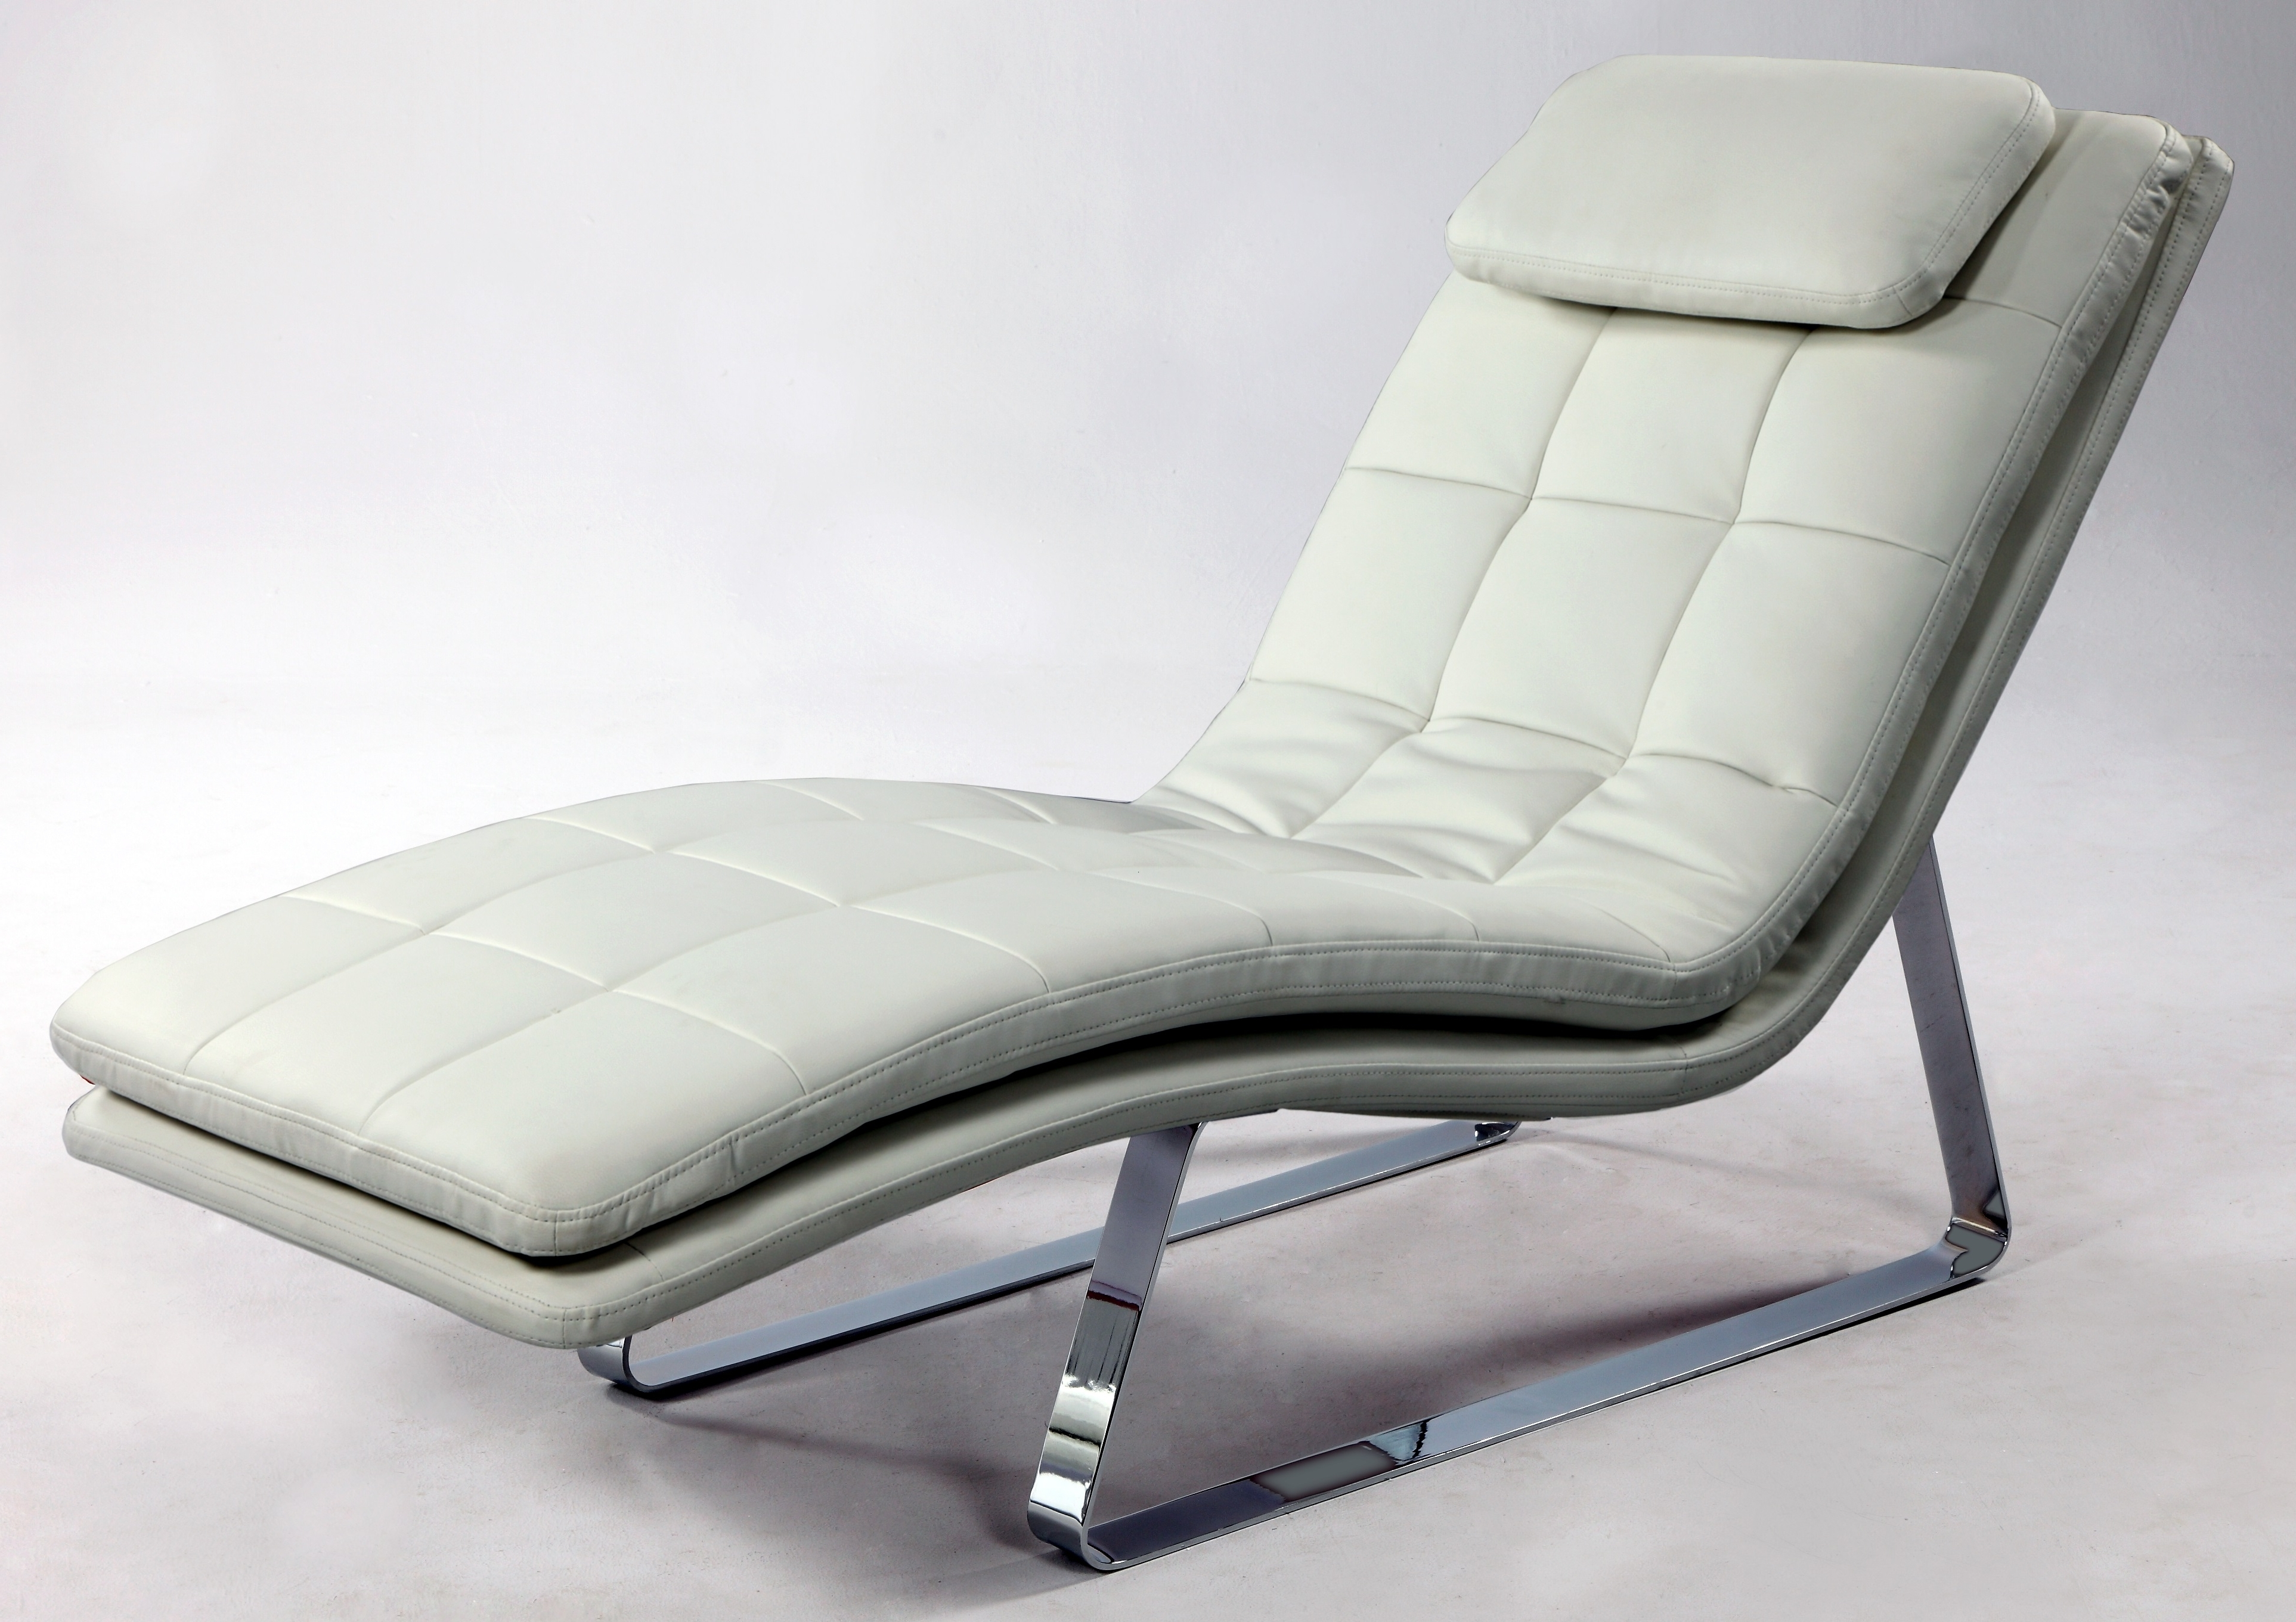 Most Recently Released Full Bonded Leather Tufted Chaise Lounge With Chrome Legs New York With Modern Chaise Lounges (View 4 of 15)